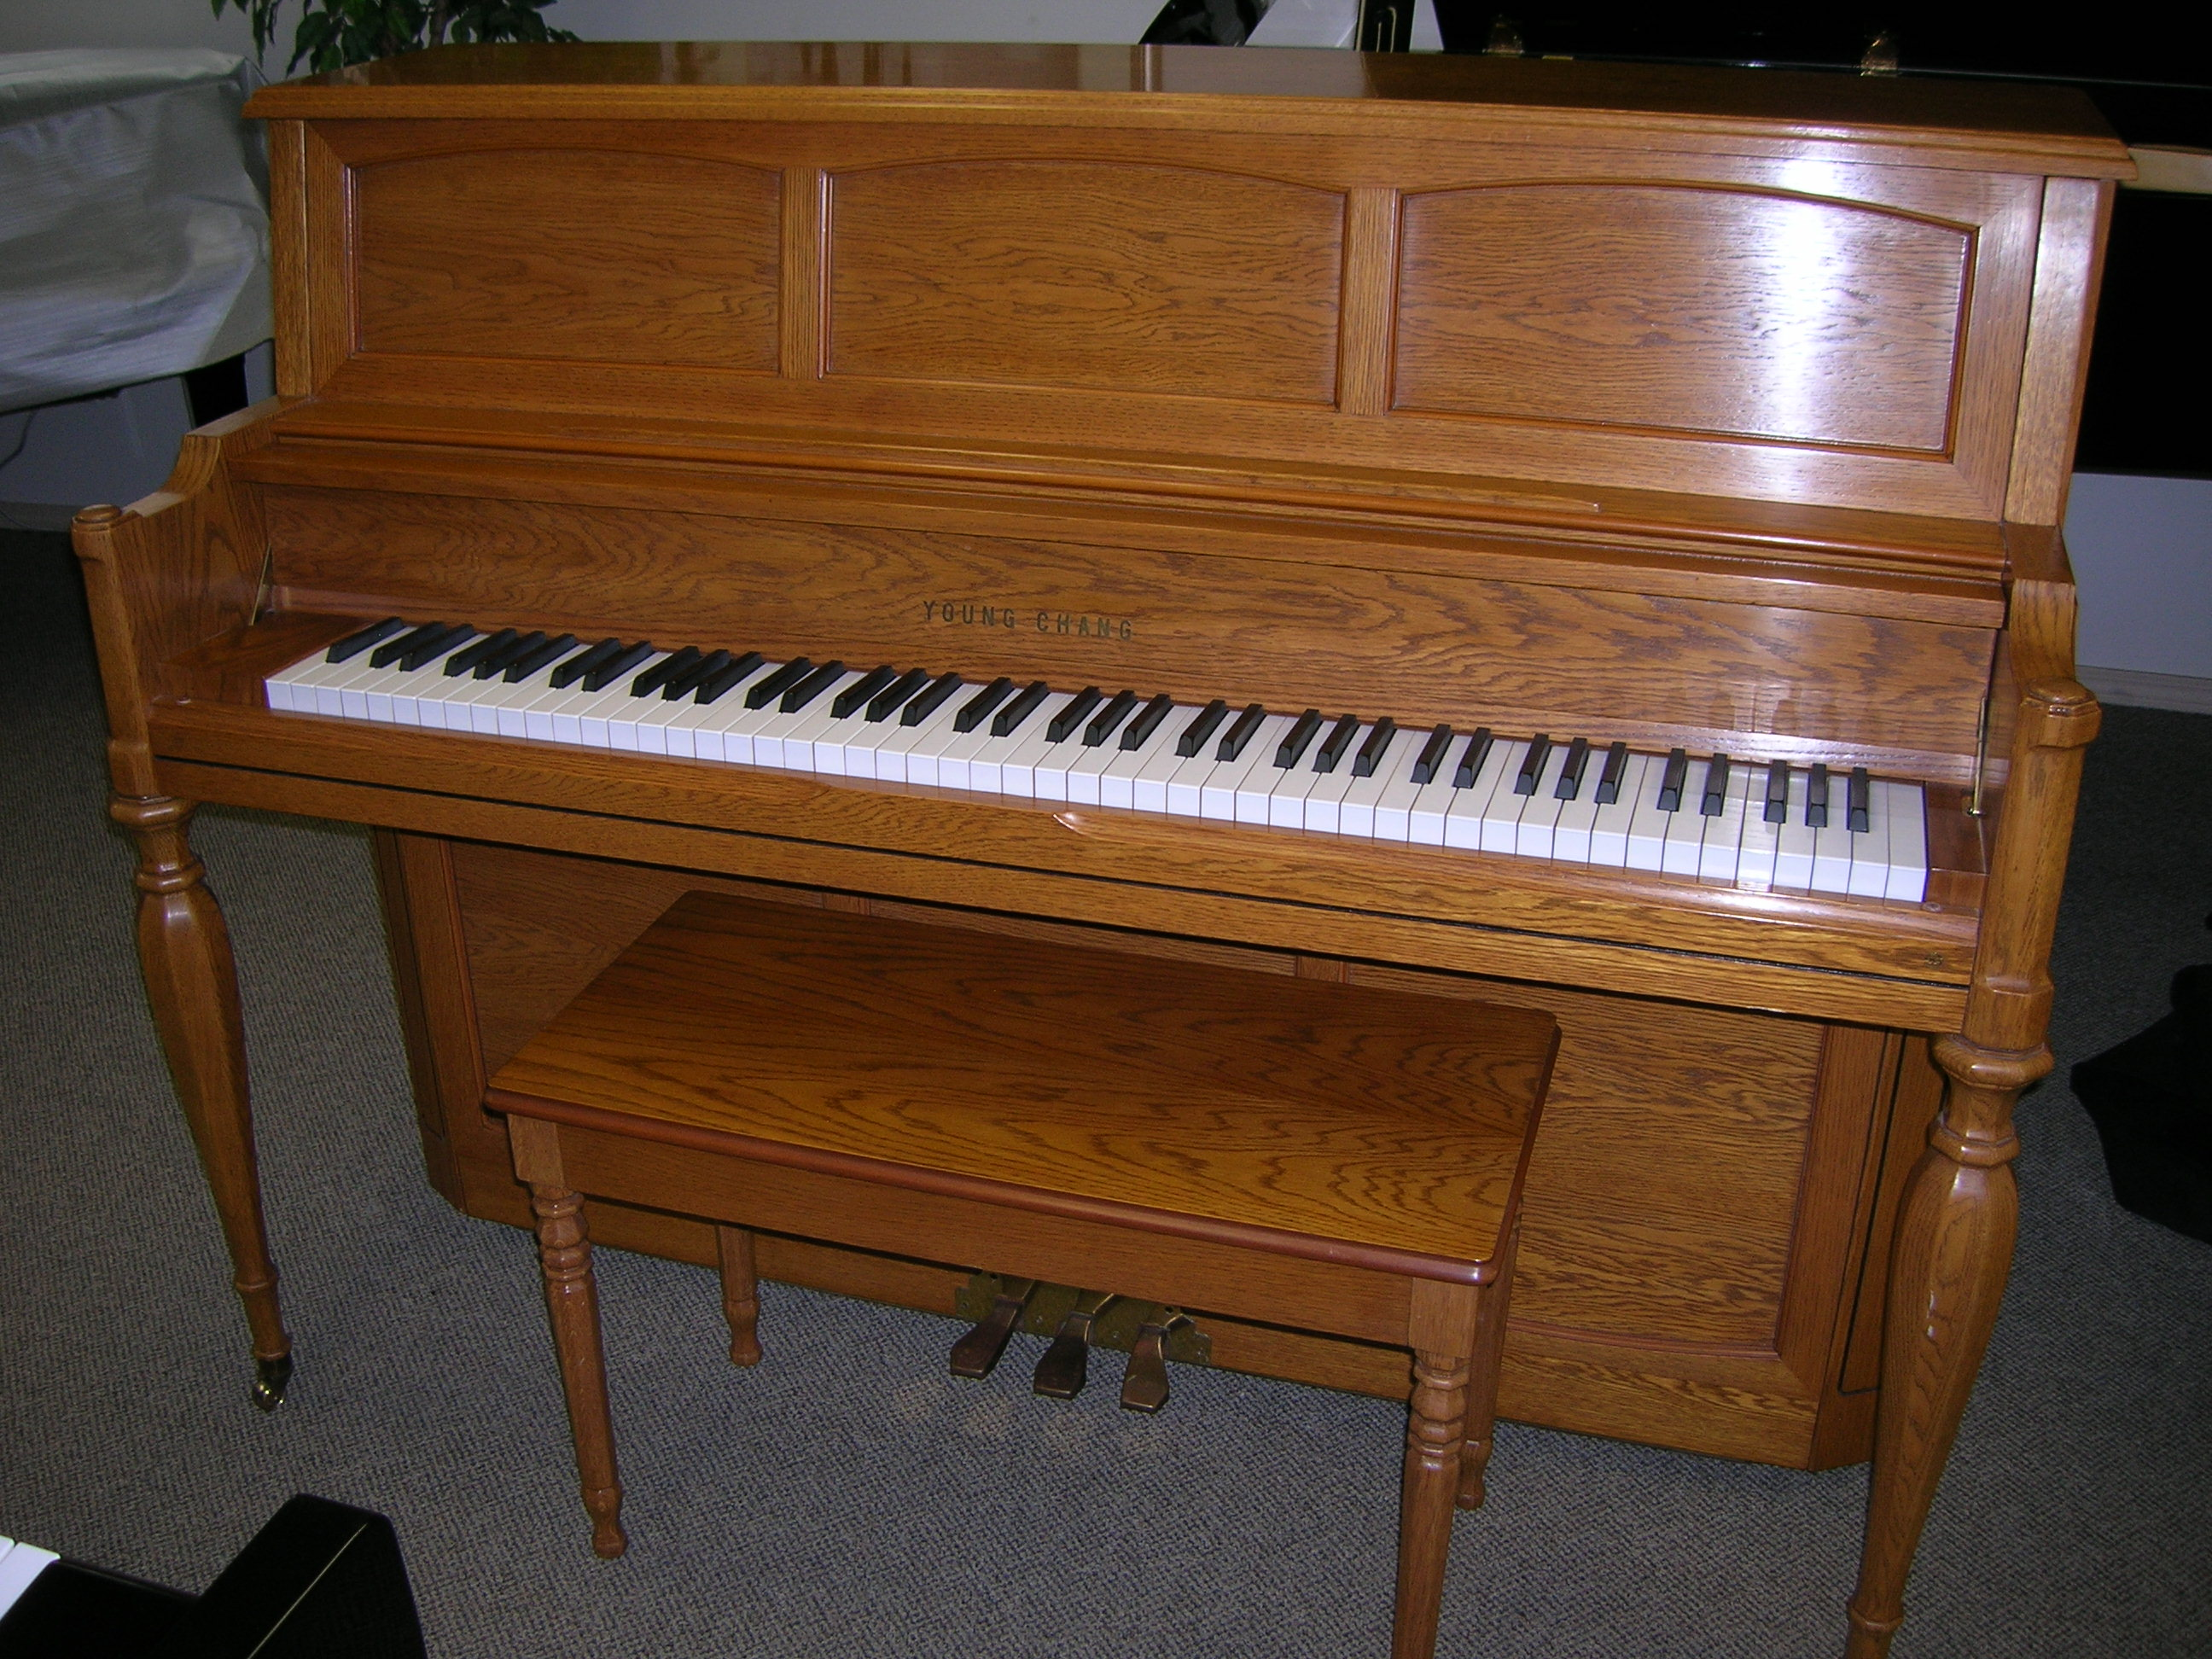 1988 young chang 46 decorator studio piano all about pianos. Black Bedroom Furniture Sets. Home Design Ideas